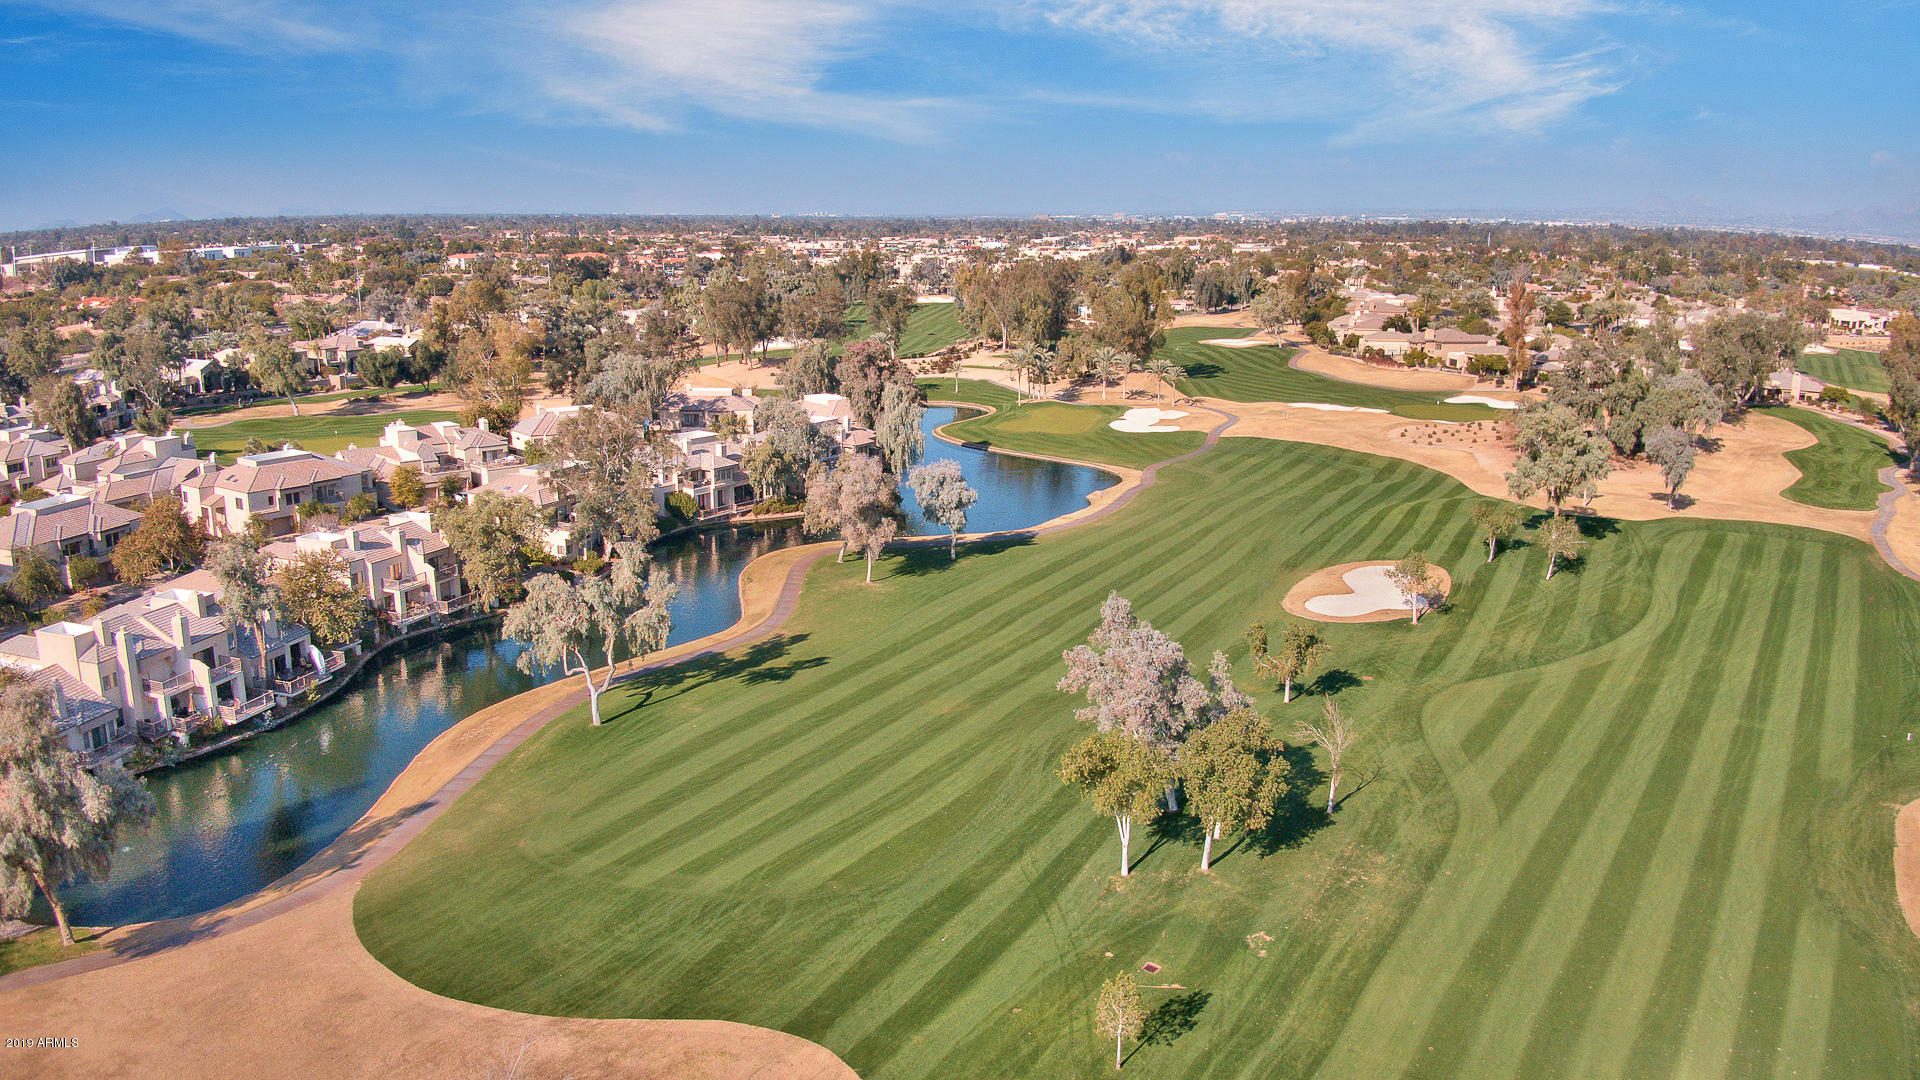 7272 E Gainey Ranch Road 29 Scottsdale 85258